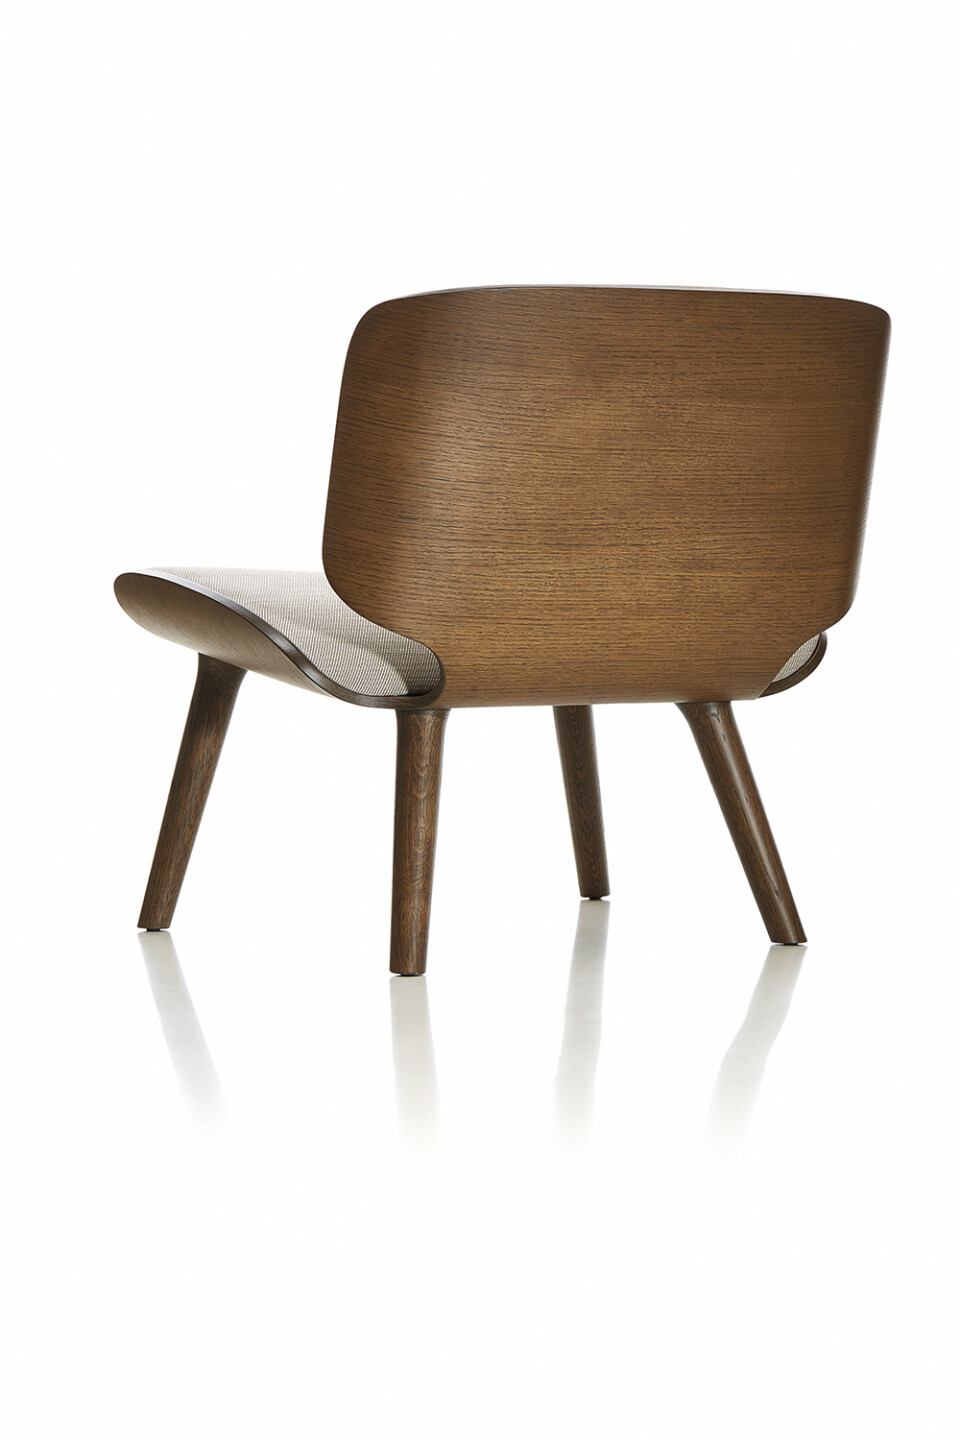 Moooi Nut Lounge Chair lepotuoli takaa